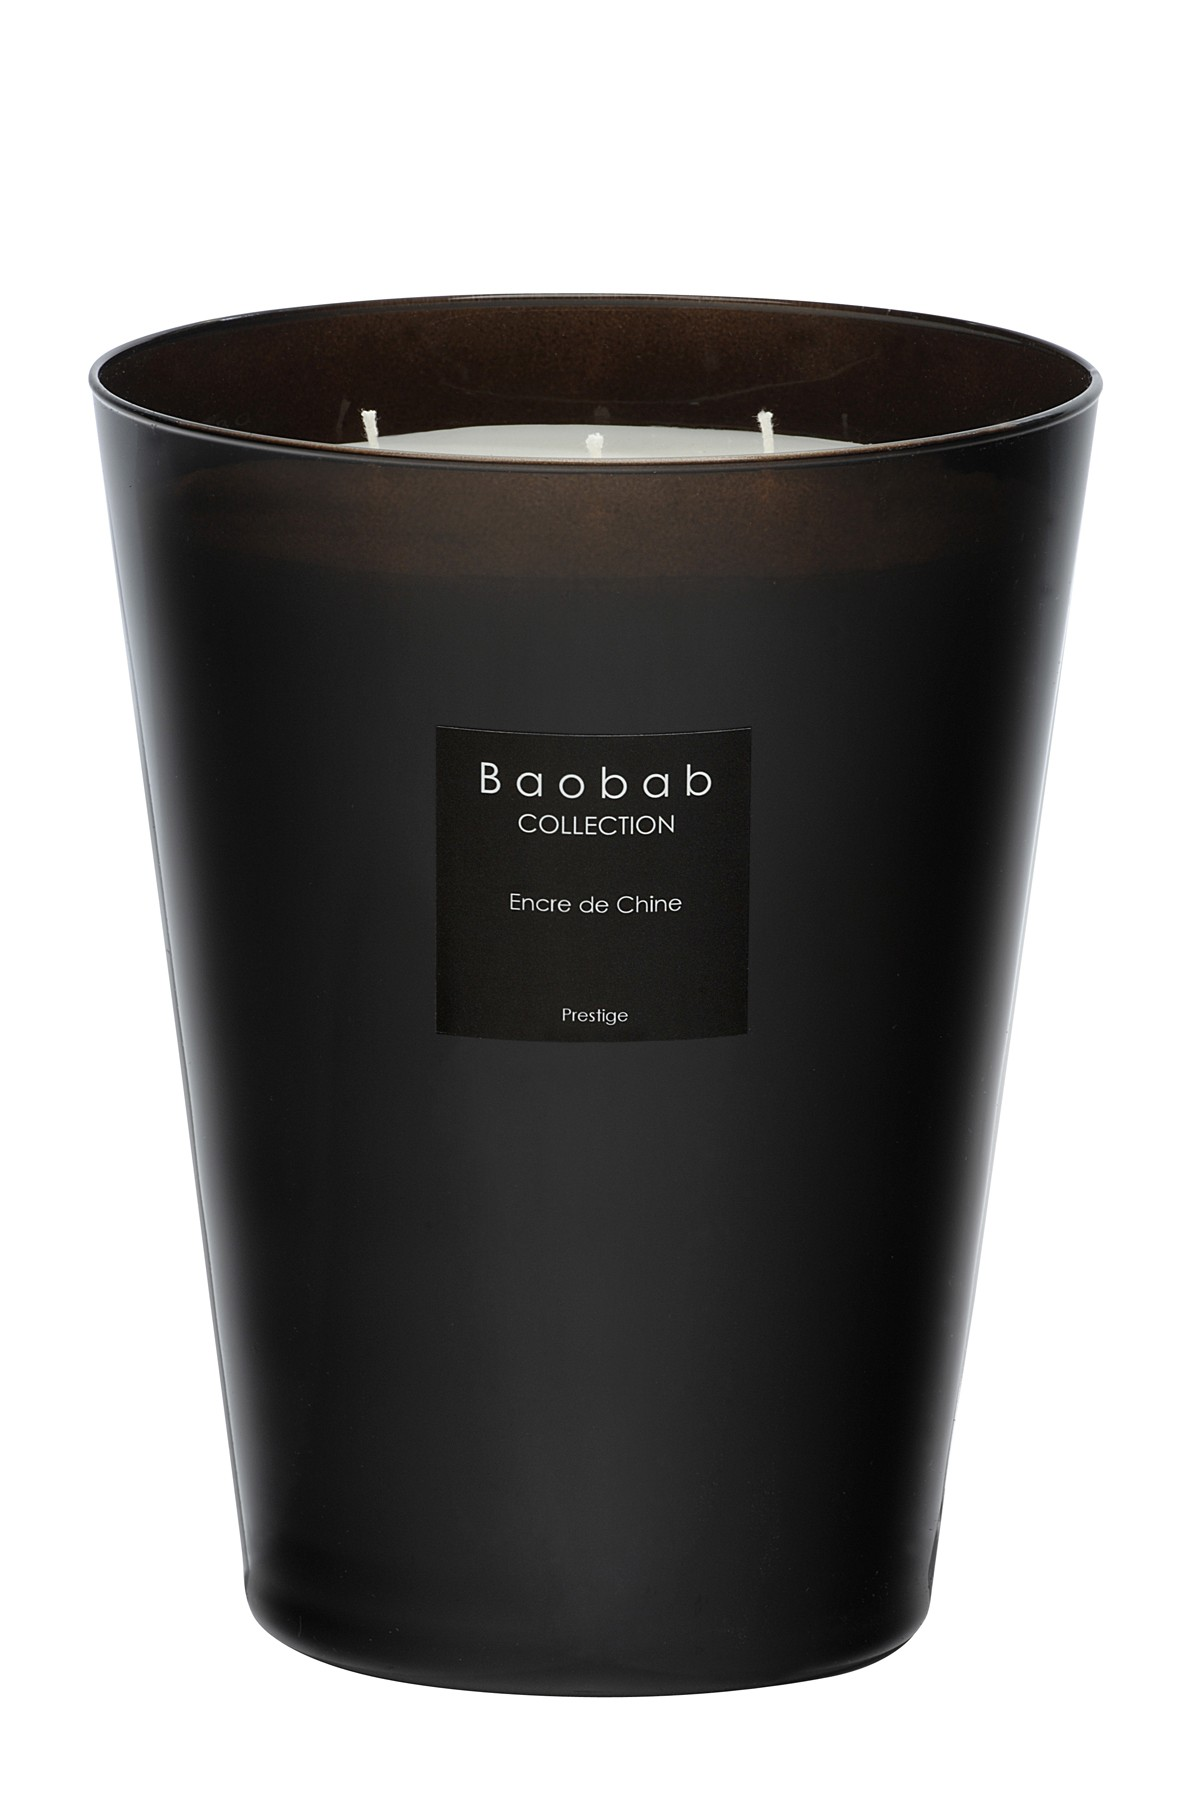 Bougie Baobab Paris Bougie Max 24 Encre De Chine De Baobab Collection